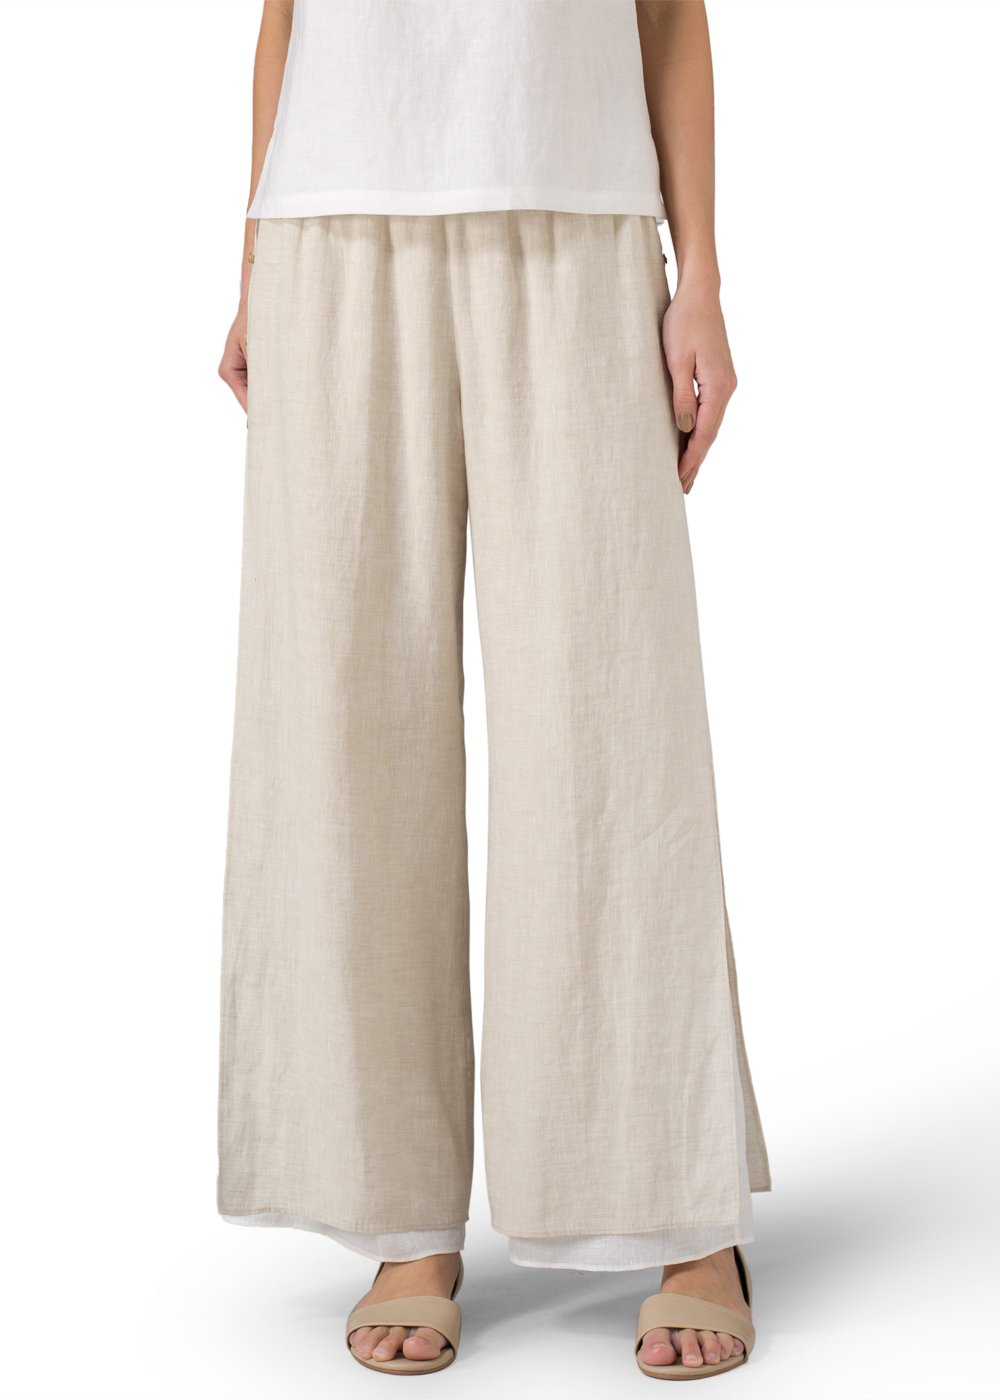 Vivid Linen Double Layers Pants With Sea Shall Button-M-Oat/Off White by Vivid Linen